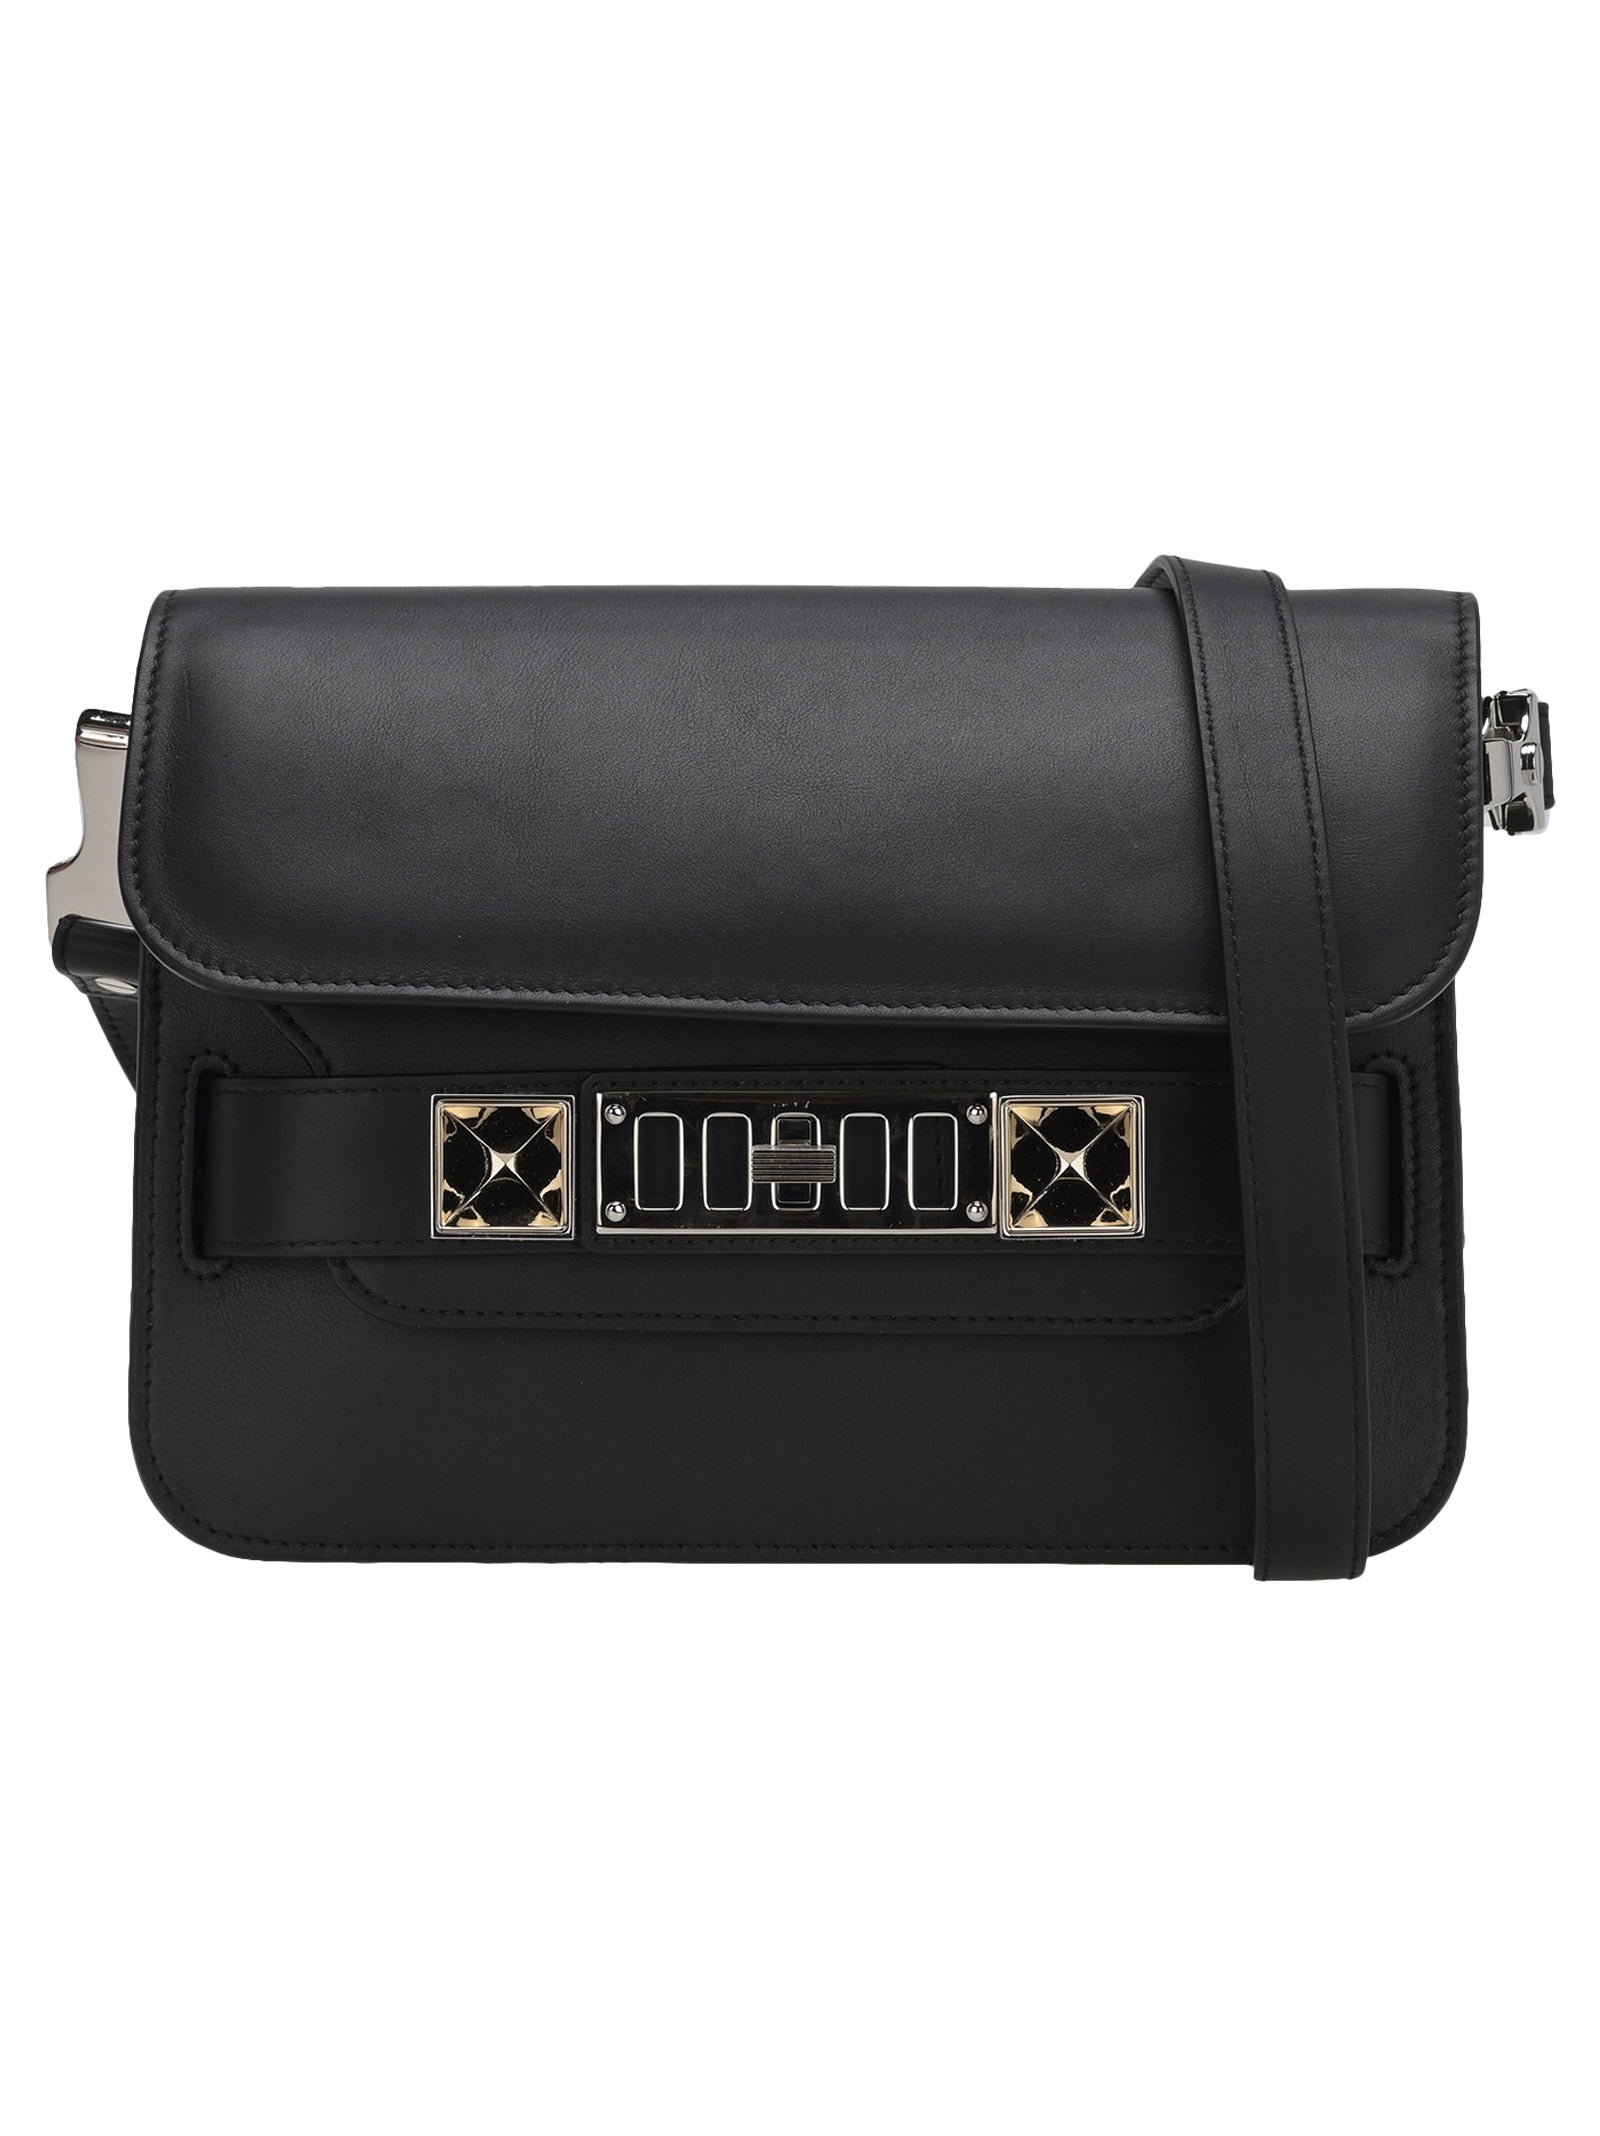 Proenza Schouler PROENZA SCHOULER PS11 MINI SHOULDER BAG